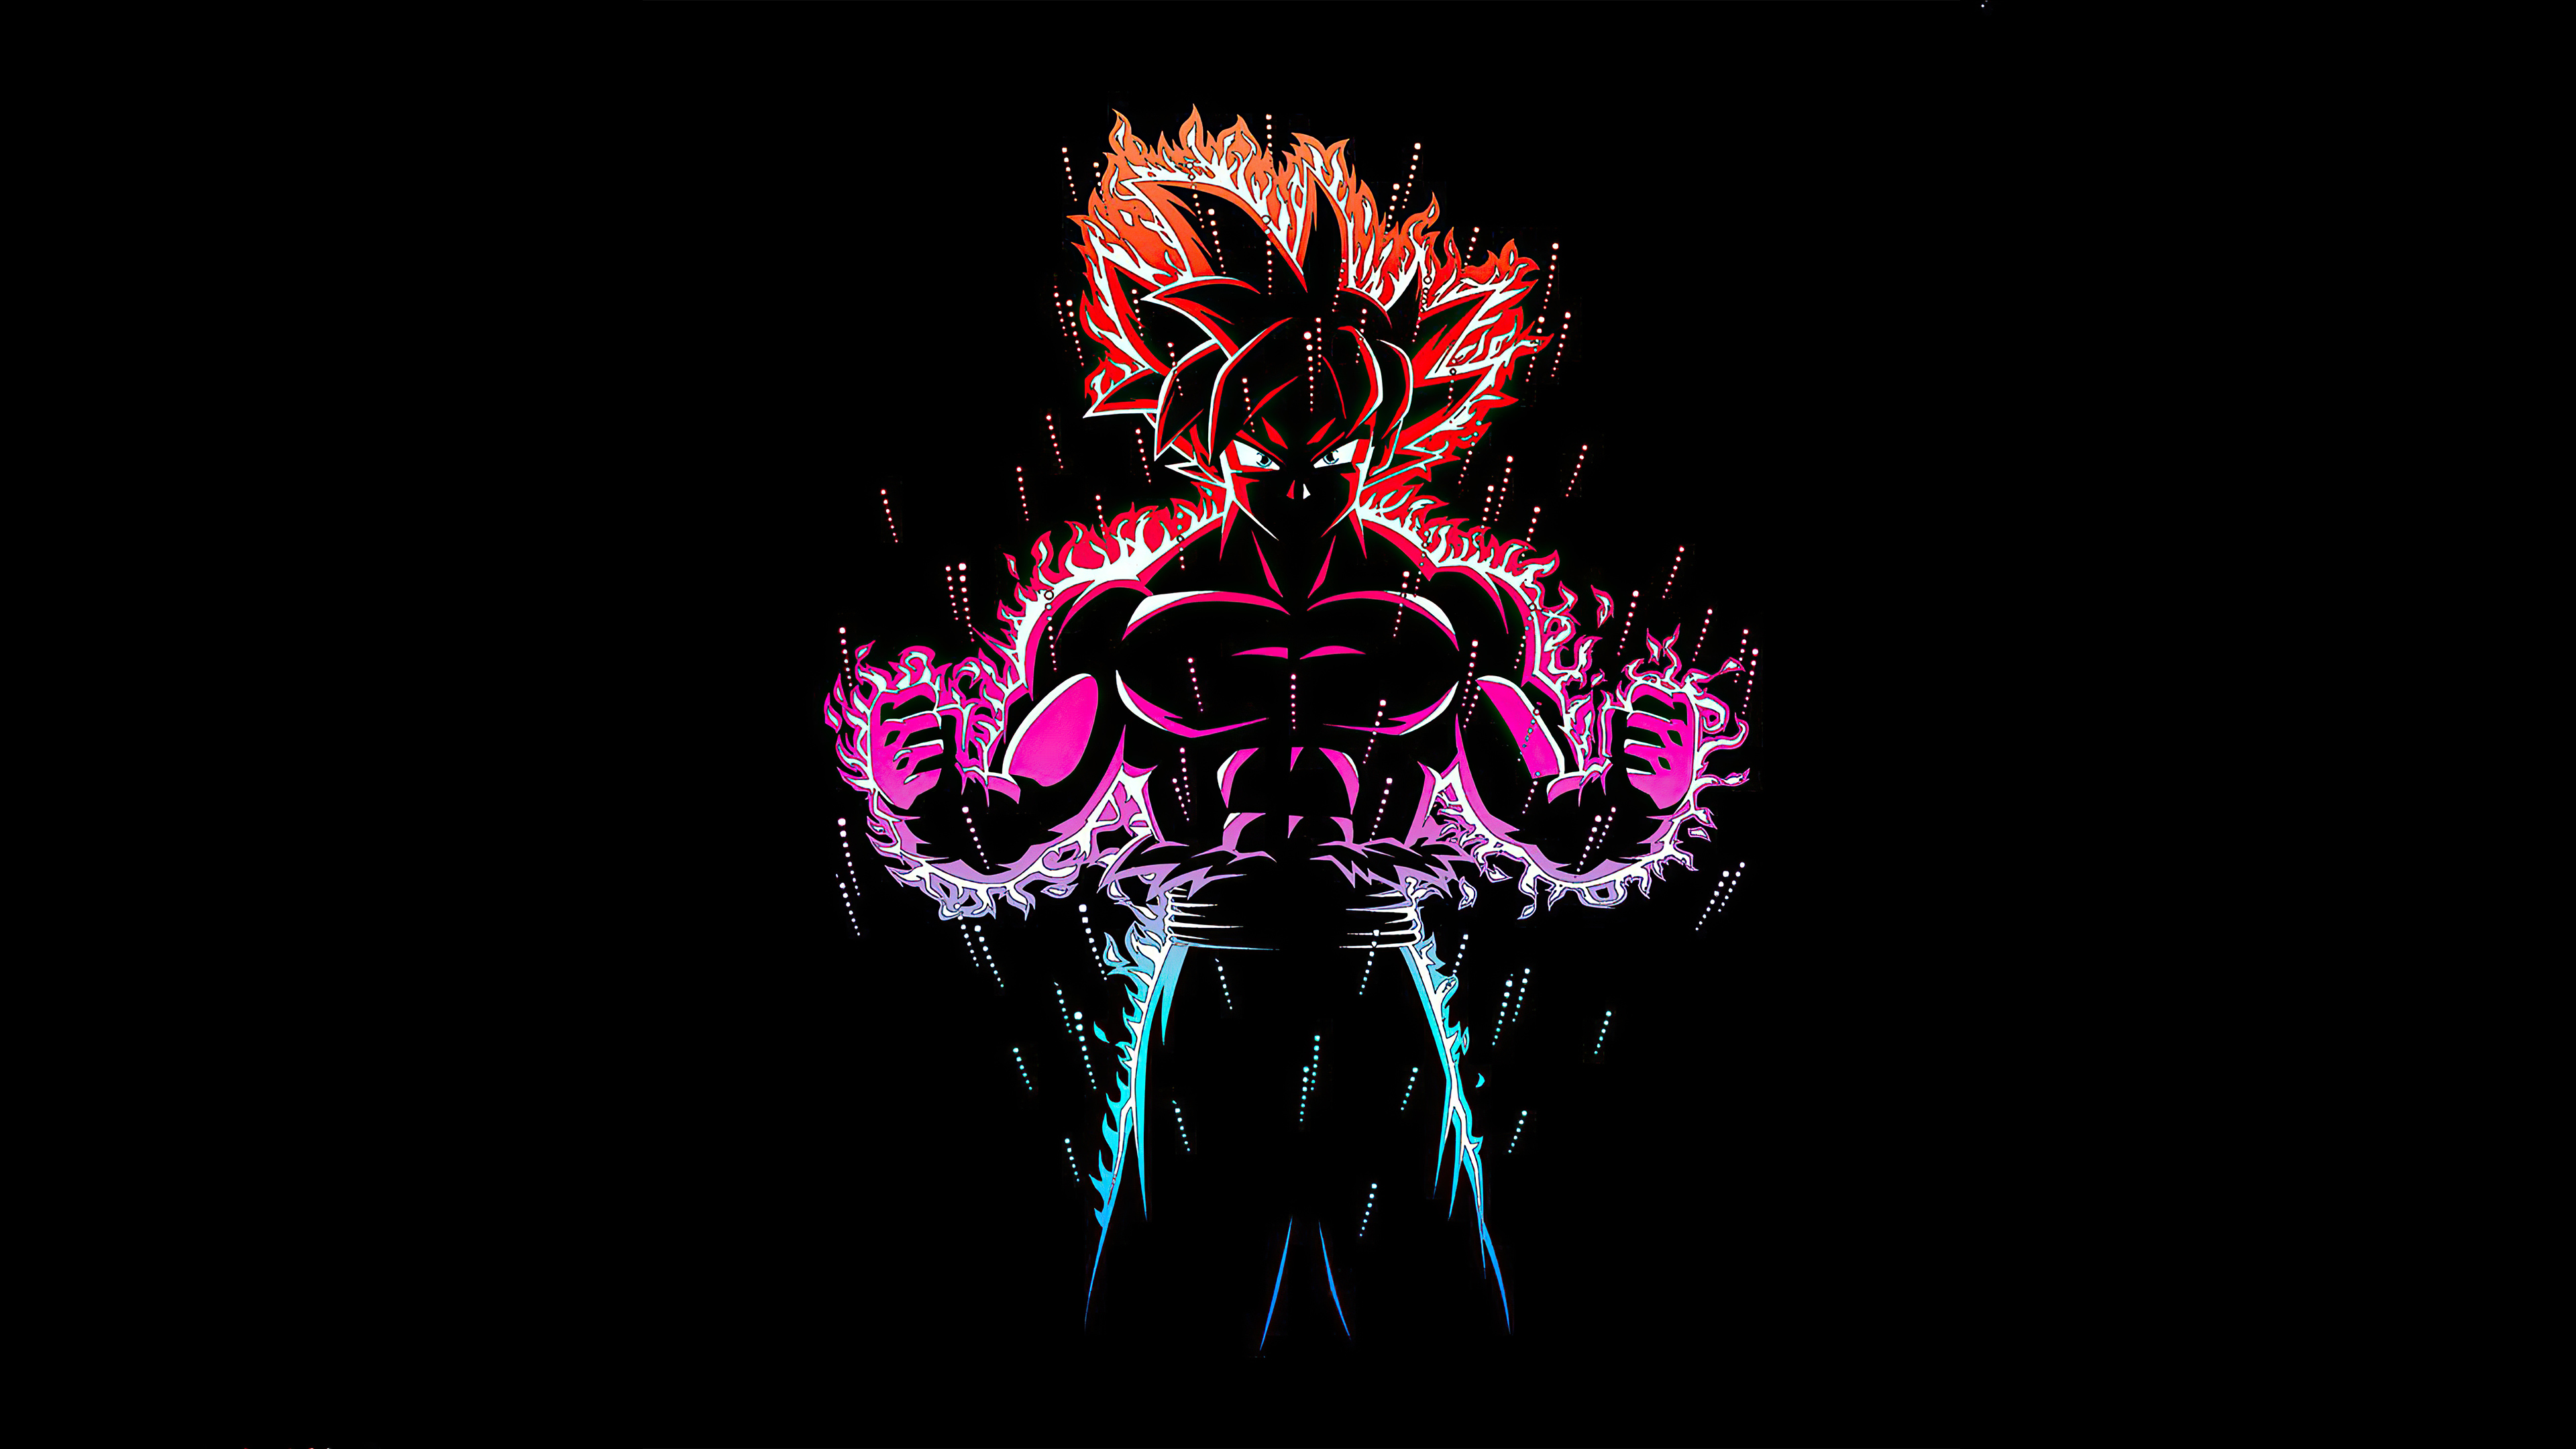 Dragon Ball Z Goku Ultra Instinct Fire 4k Hd Anime 4k Wallpapers Images Backgrounds Photos And Pictures